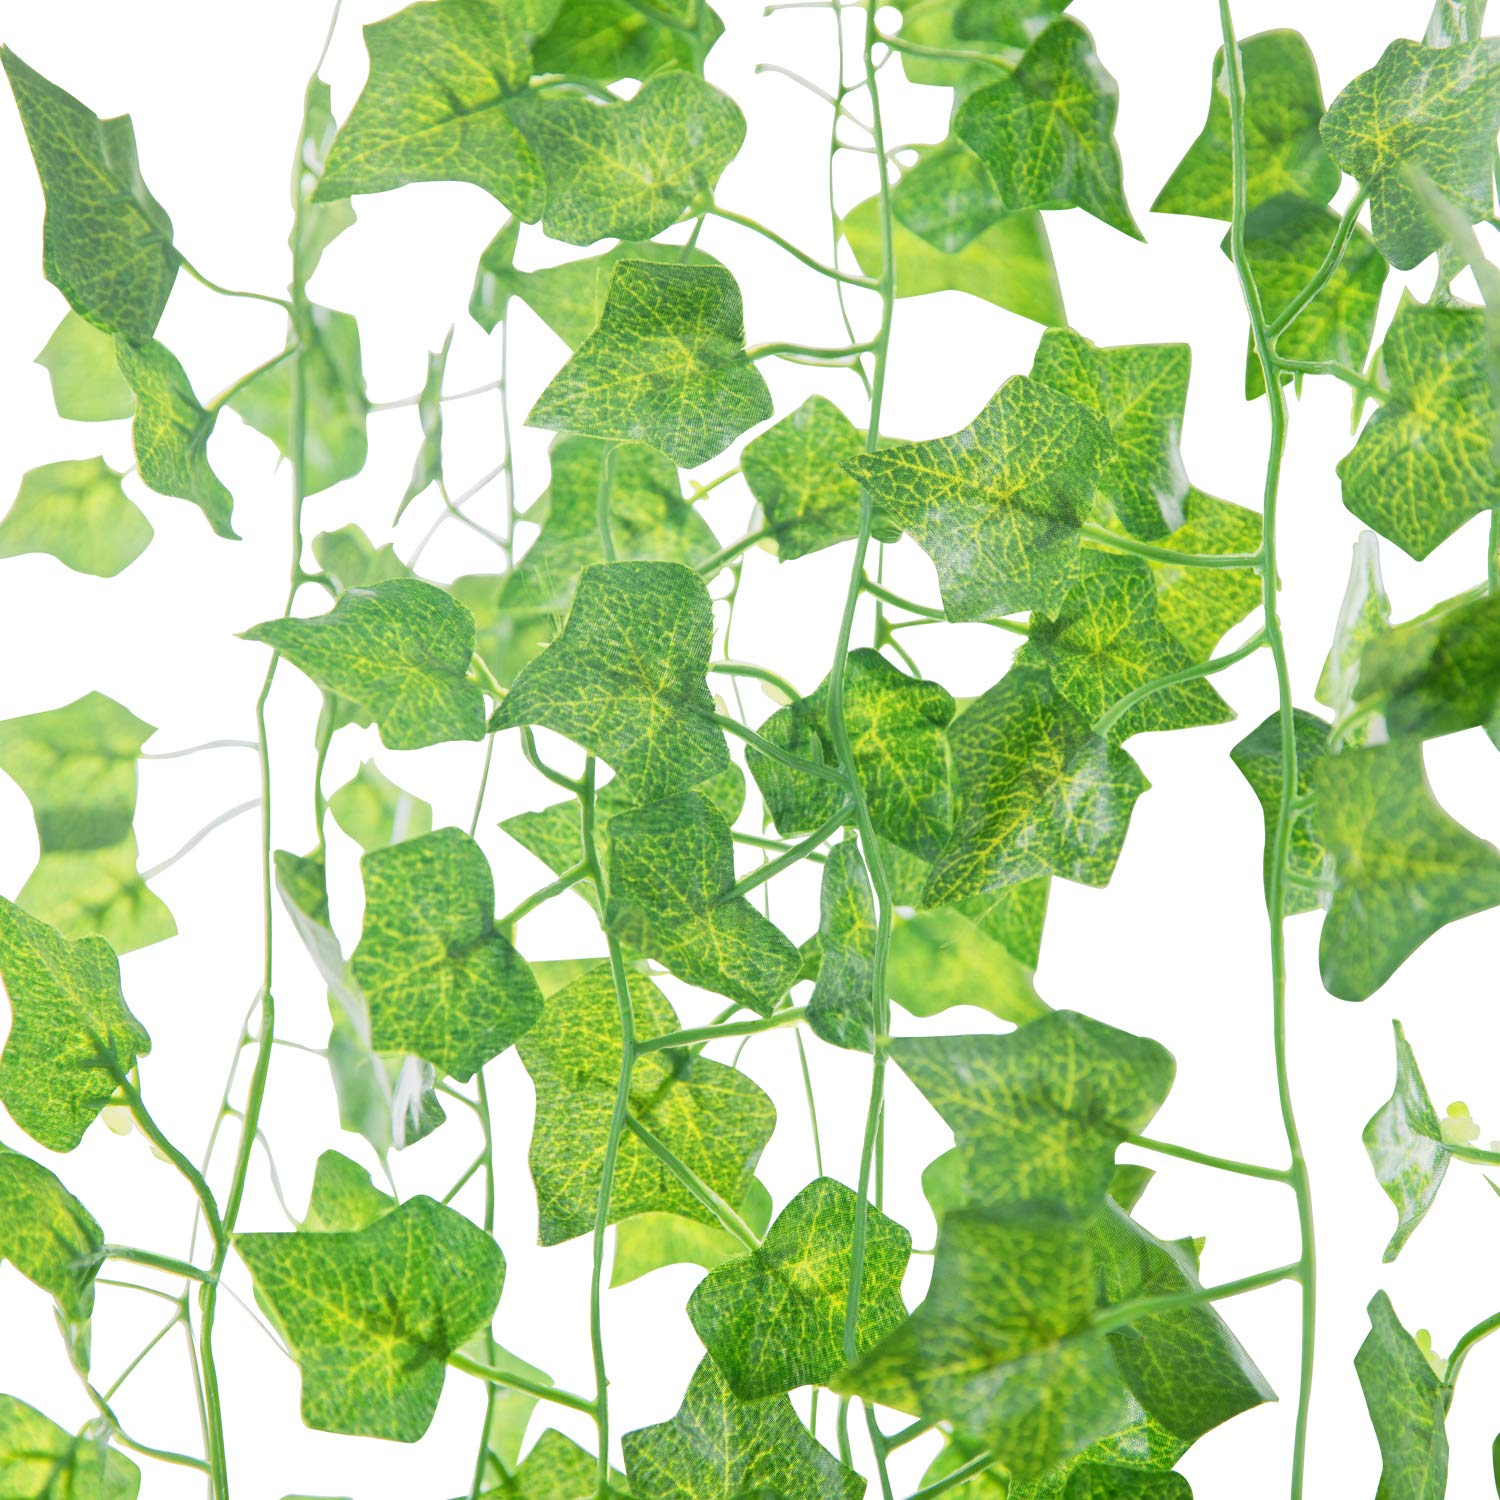 Naidiler 12 Strands 84 Ft Fake Ivy Leaves Artificial Ivy Garland Greenery Decor Faux Green Hanging Plant Vine for Wall Party Wedding Room Home Kitchen Indoor & Outdoor Decoration by Naidiler